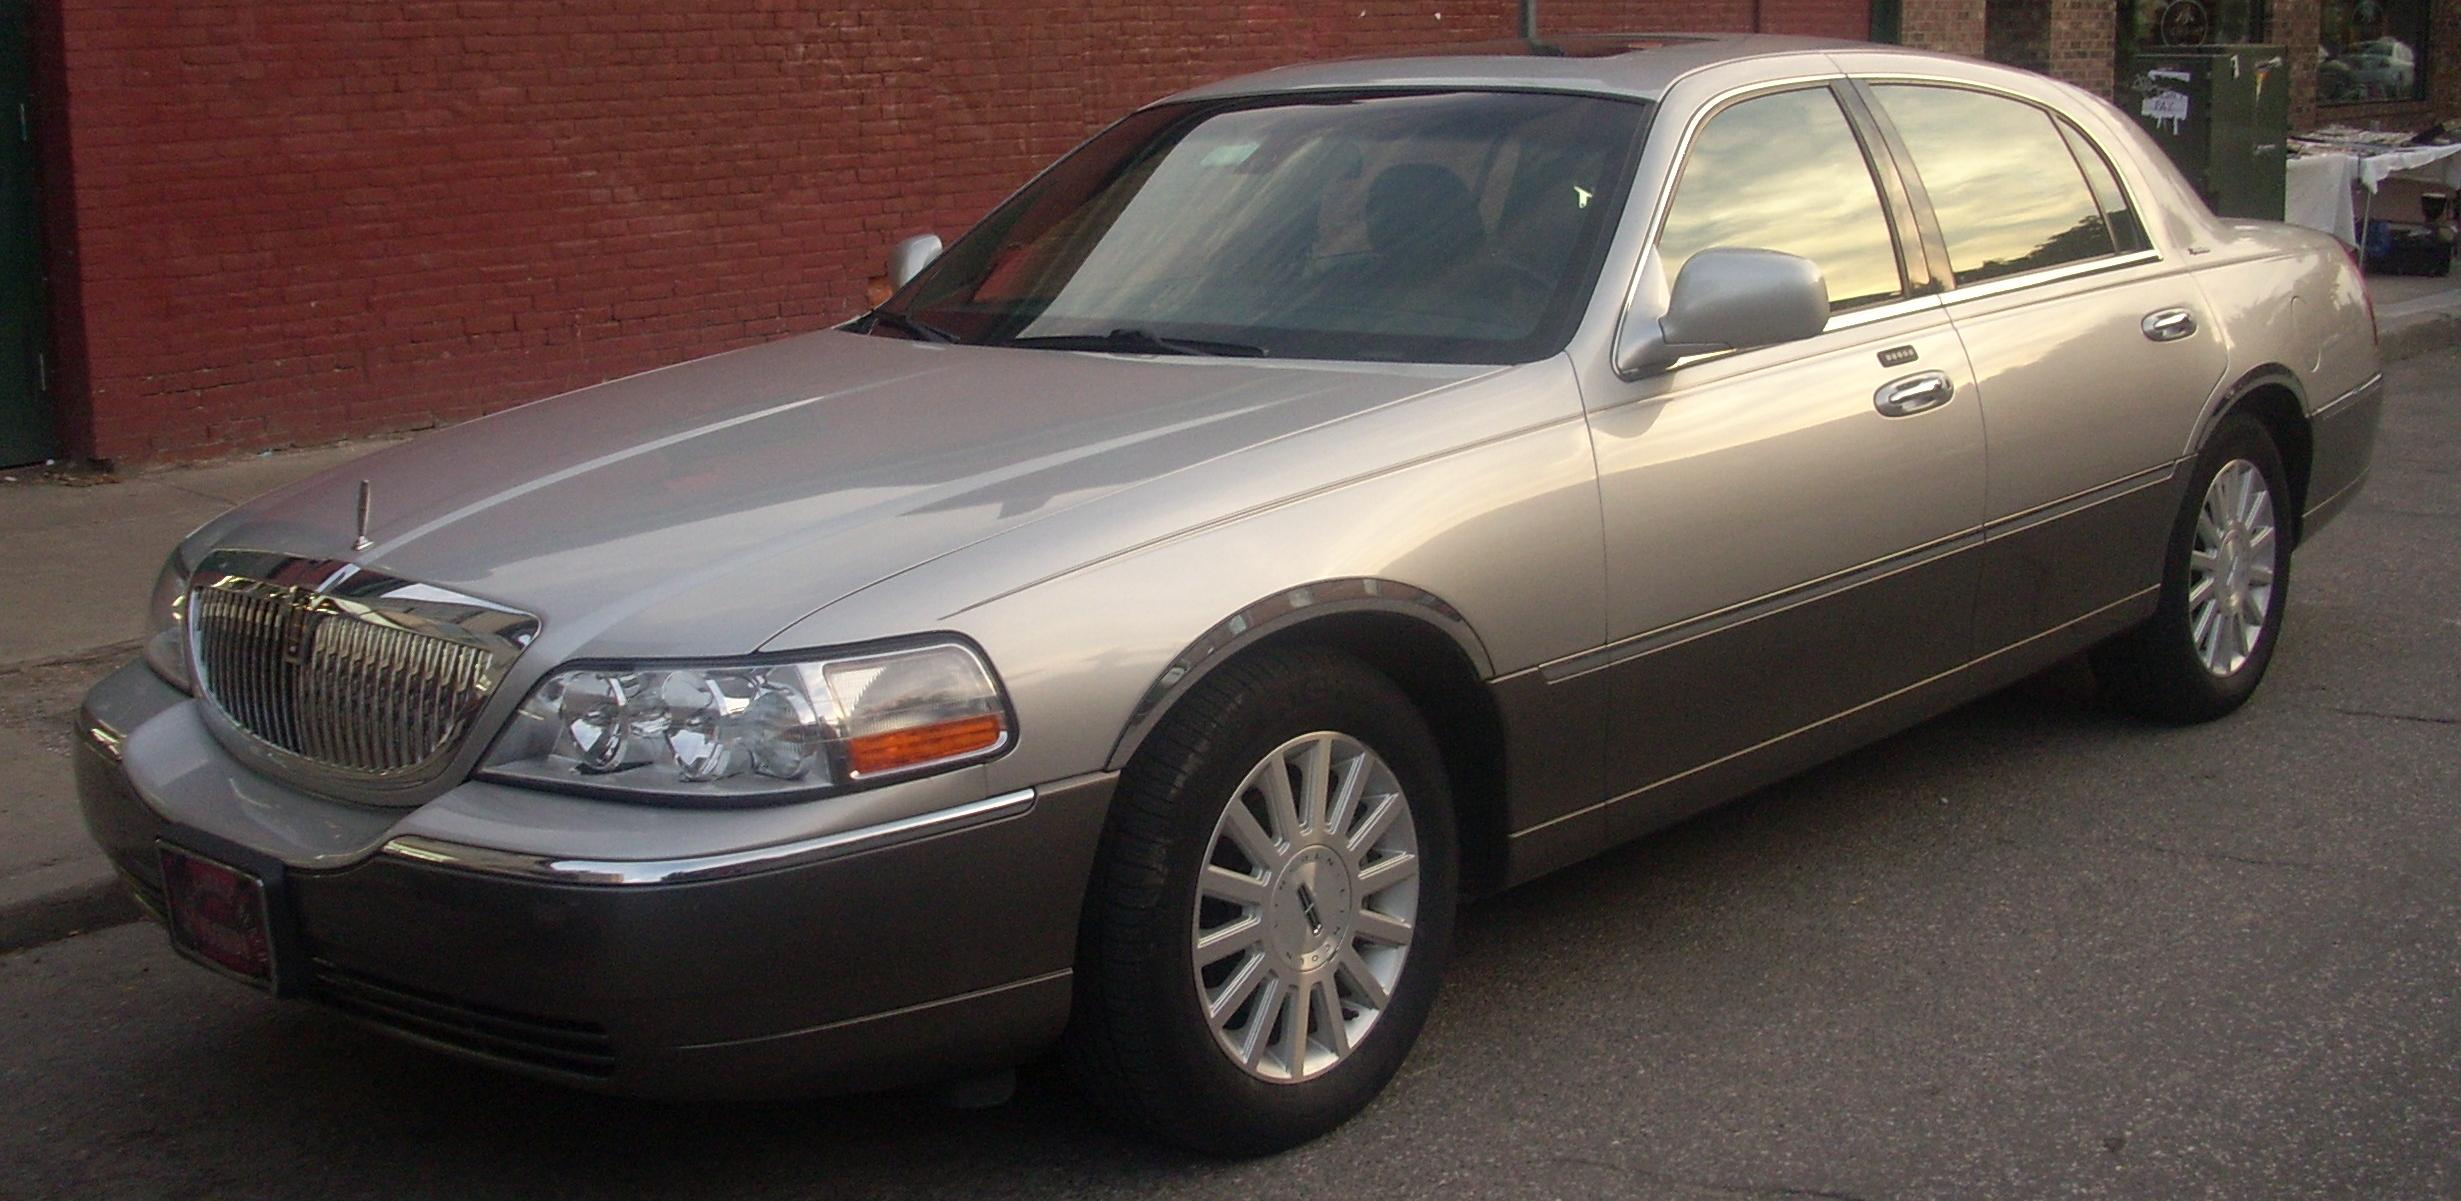 lincoln in ny sale town car carsforsale used yonkers for cars com